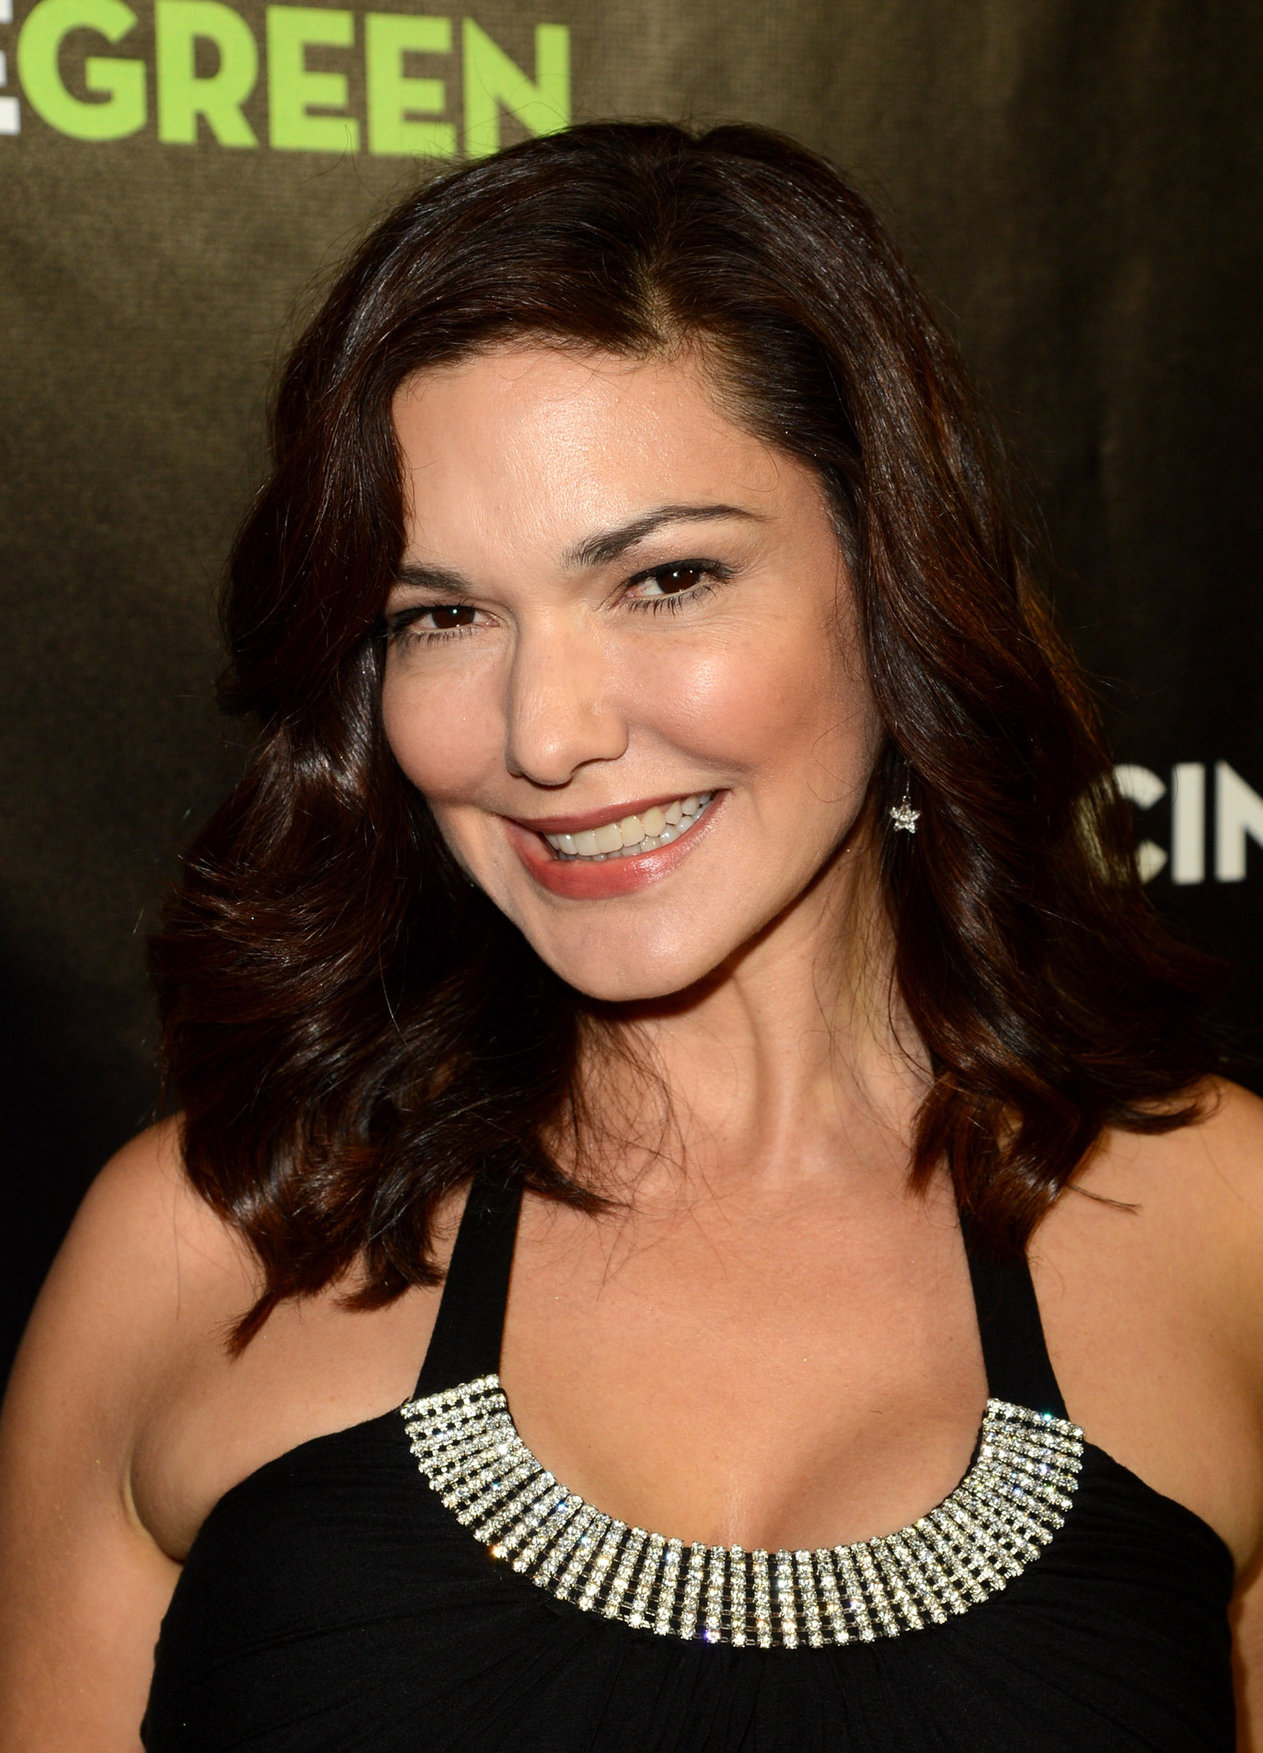 Laura harring actress, cumming on white girls pussy